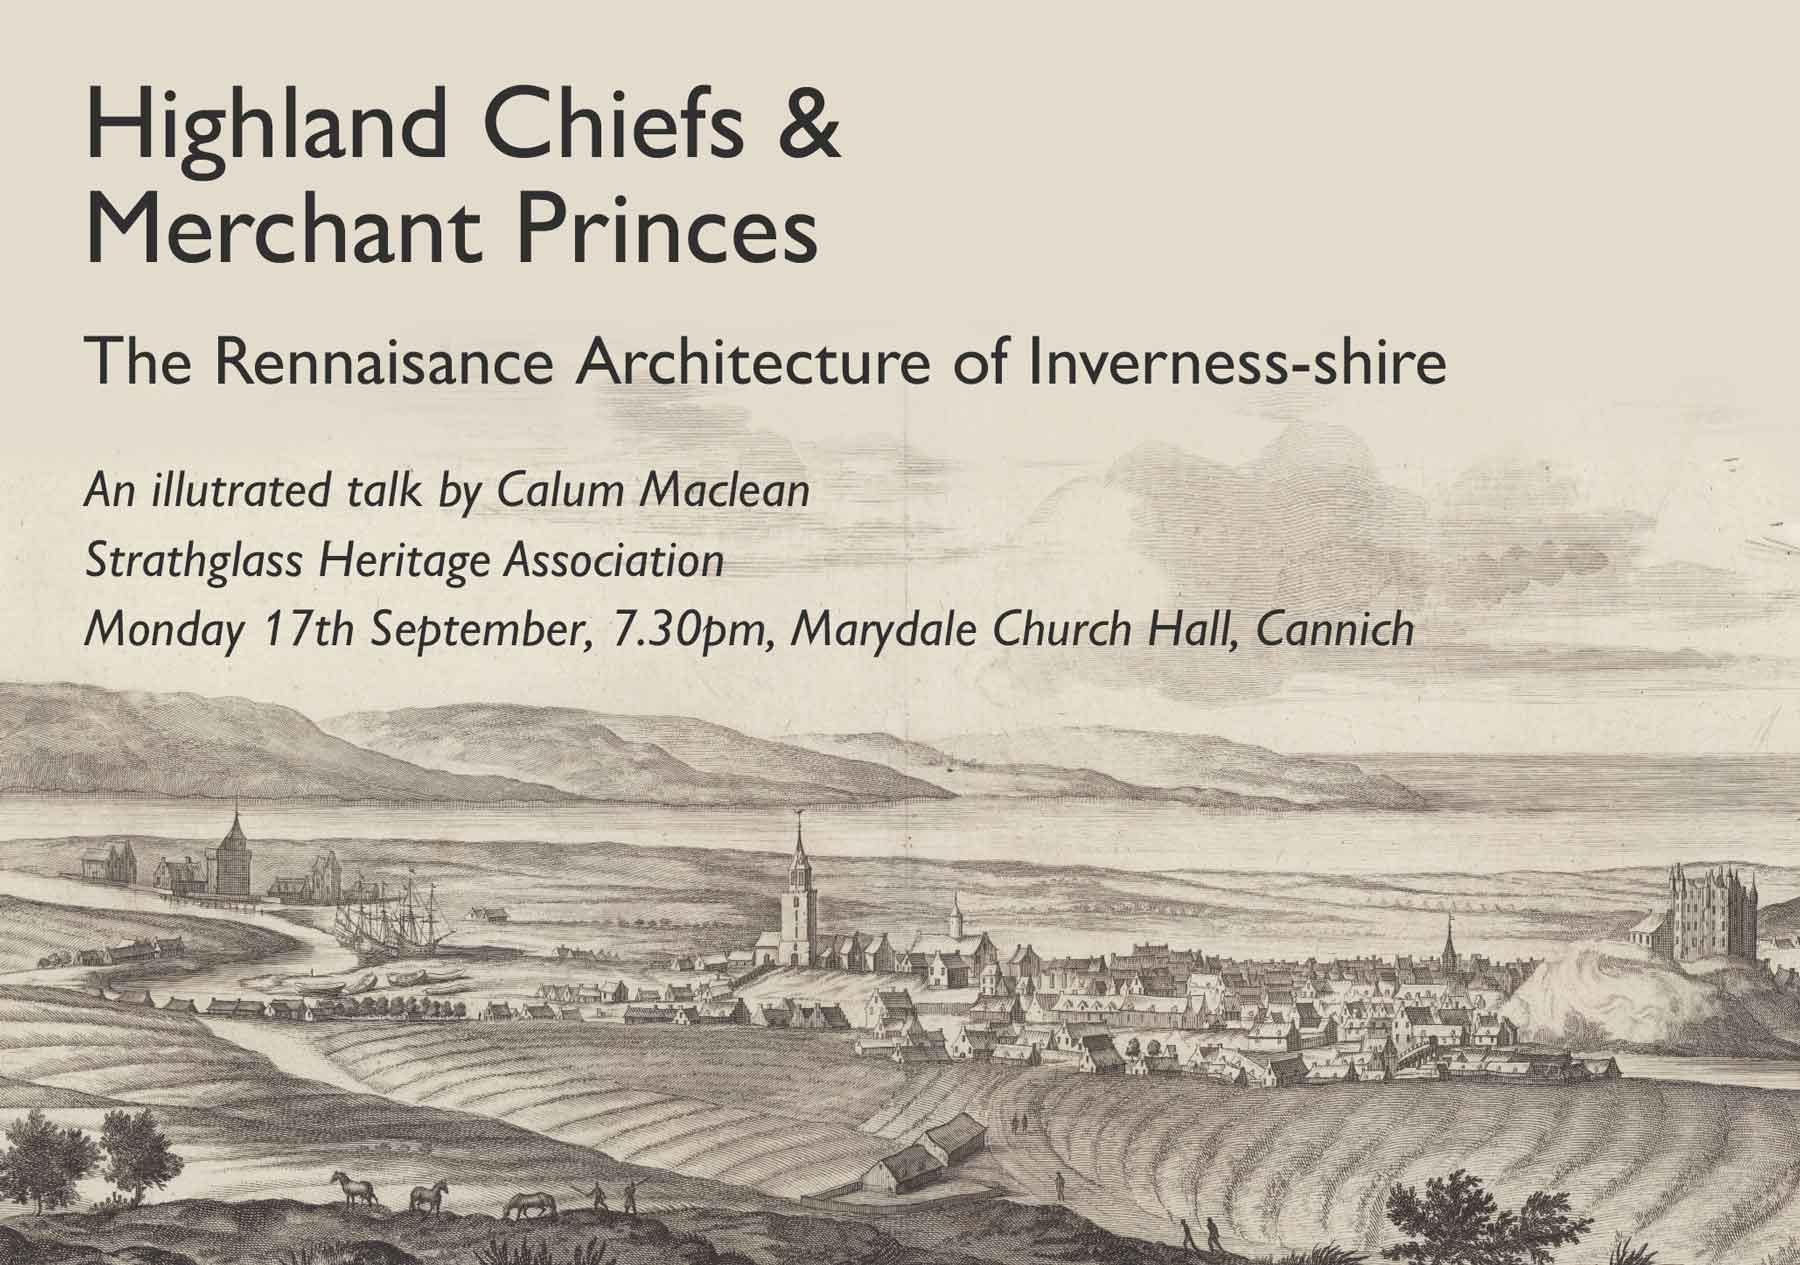 Highland Chiefs and Merchant Princes; Renaissance architecture in Inverness